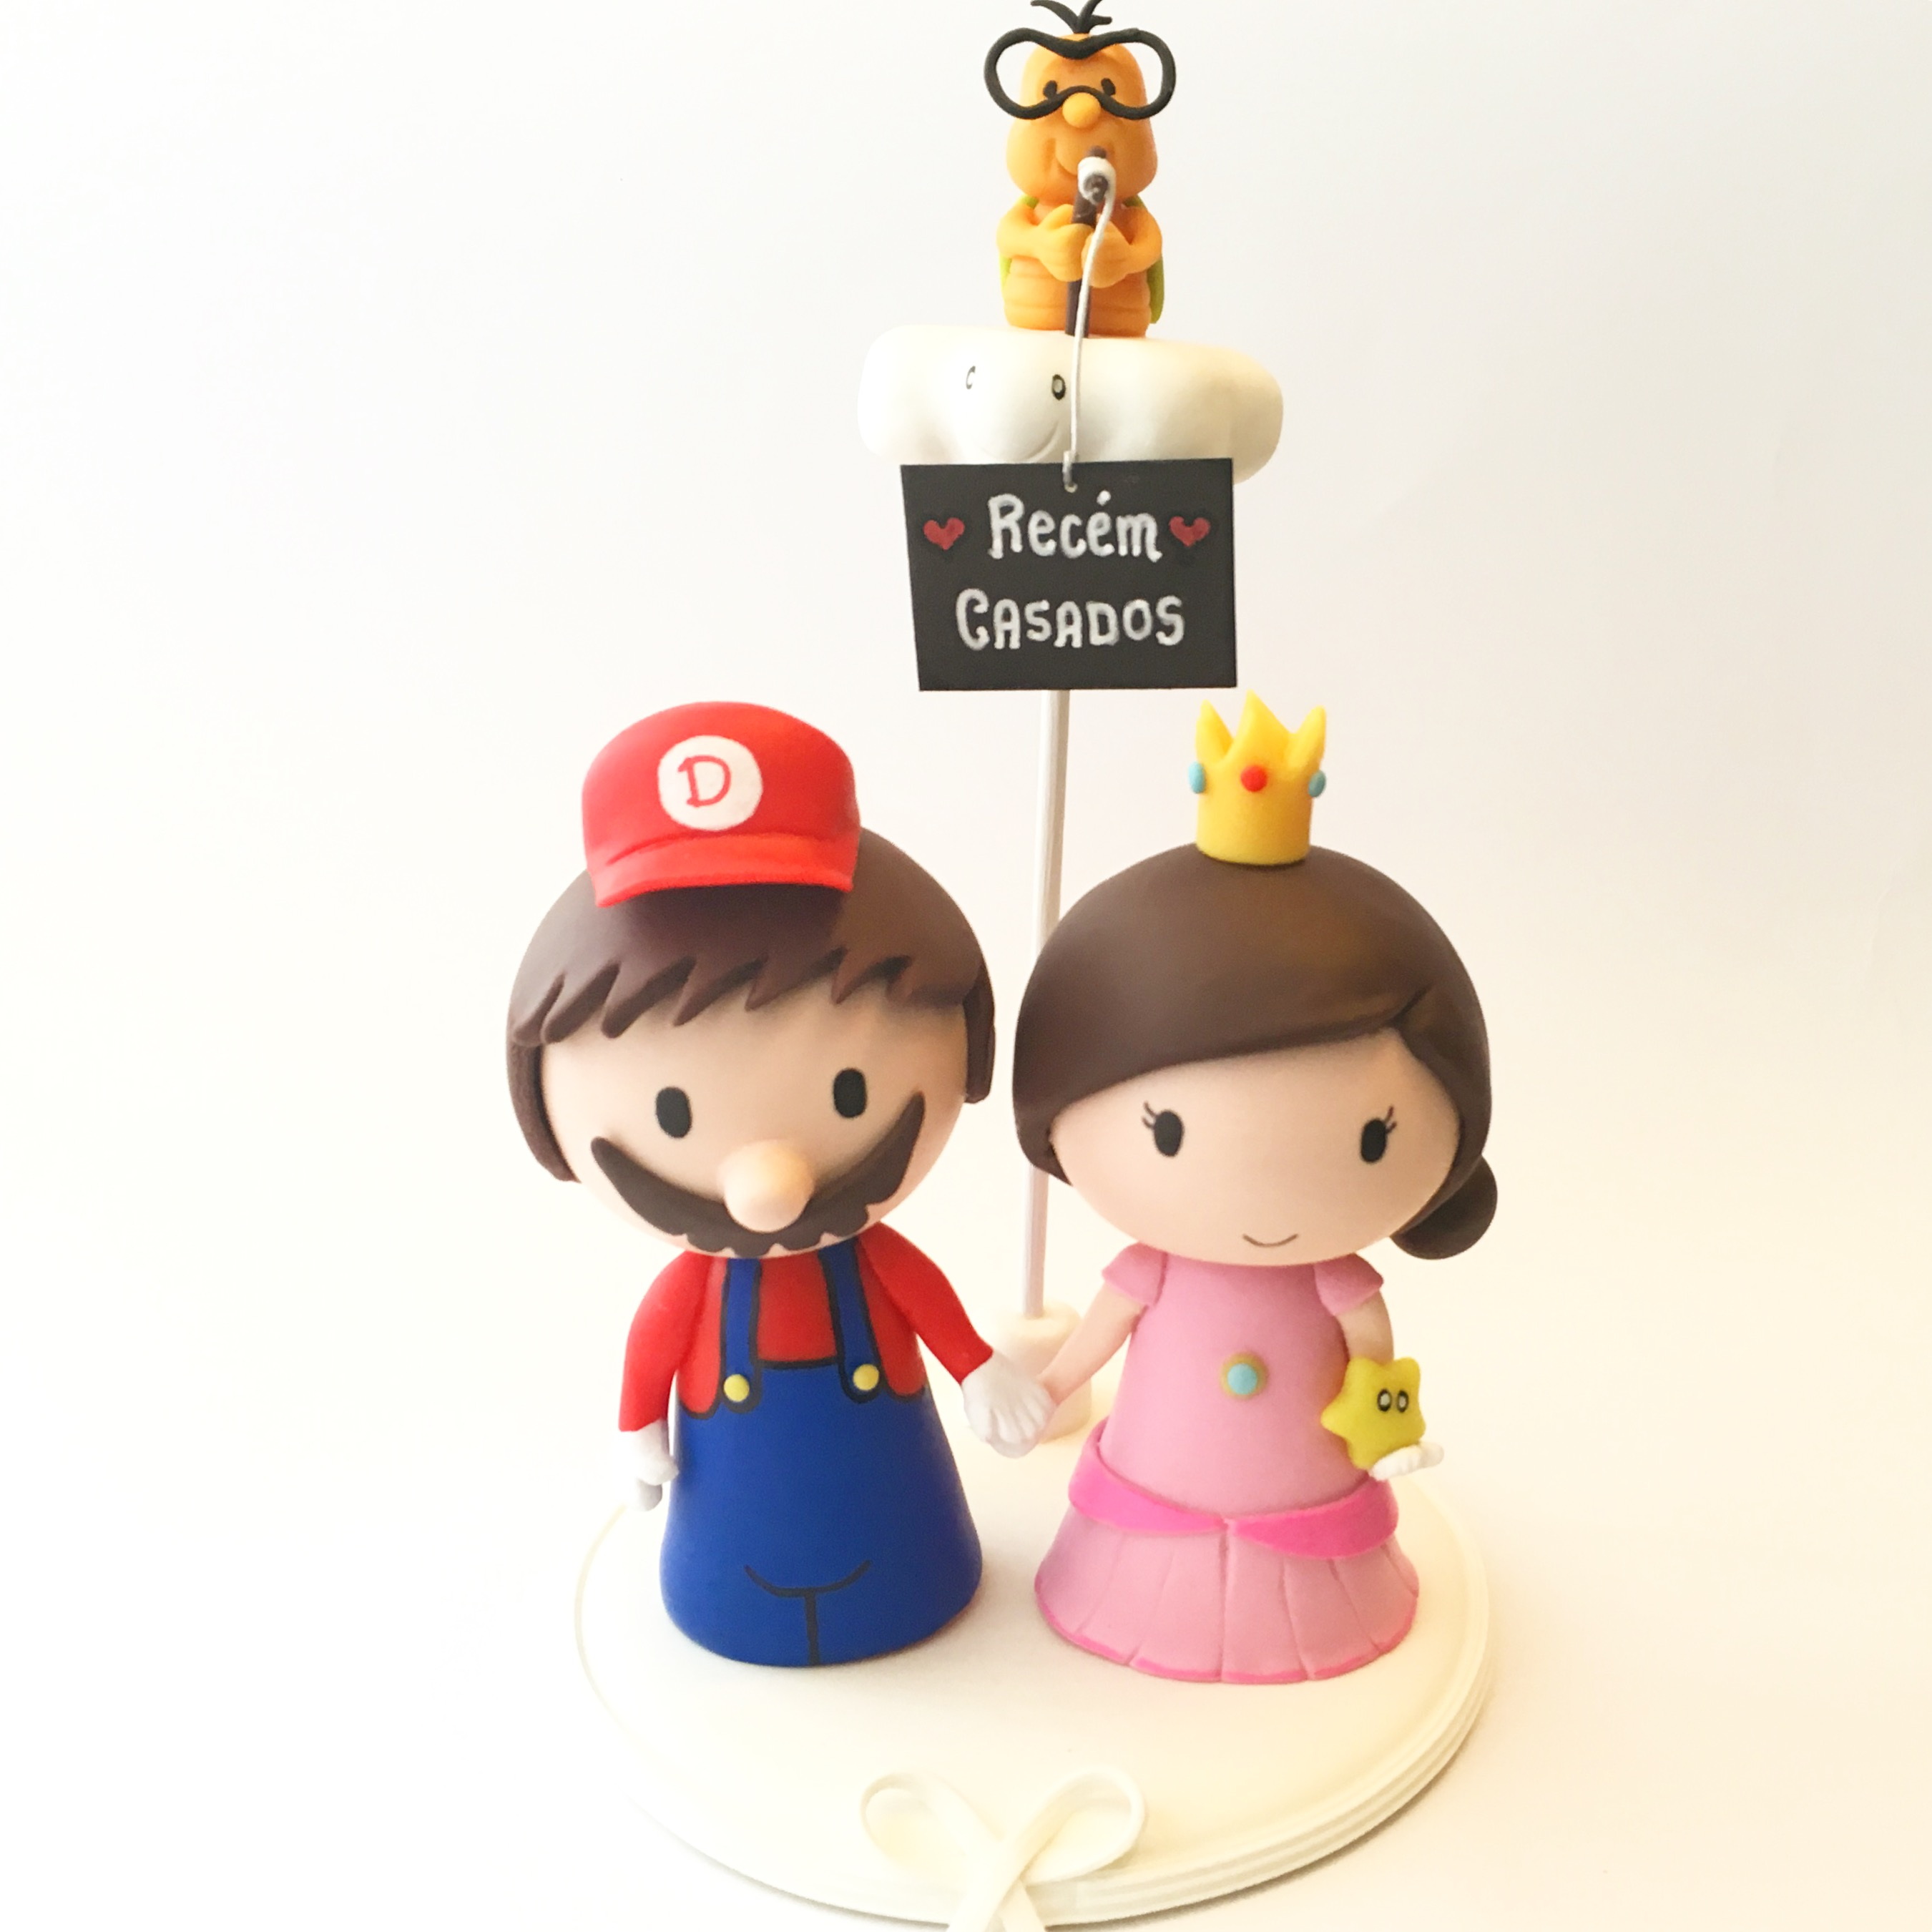 Cute-wedding-cake-topper-mario-peach-lakitu